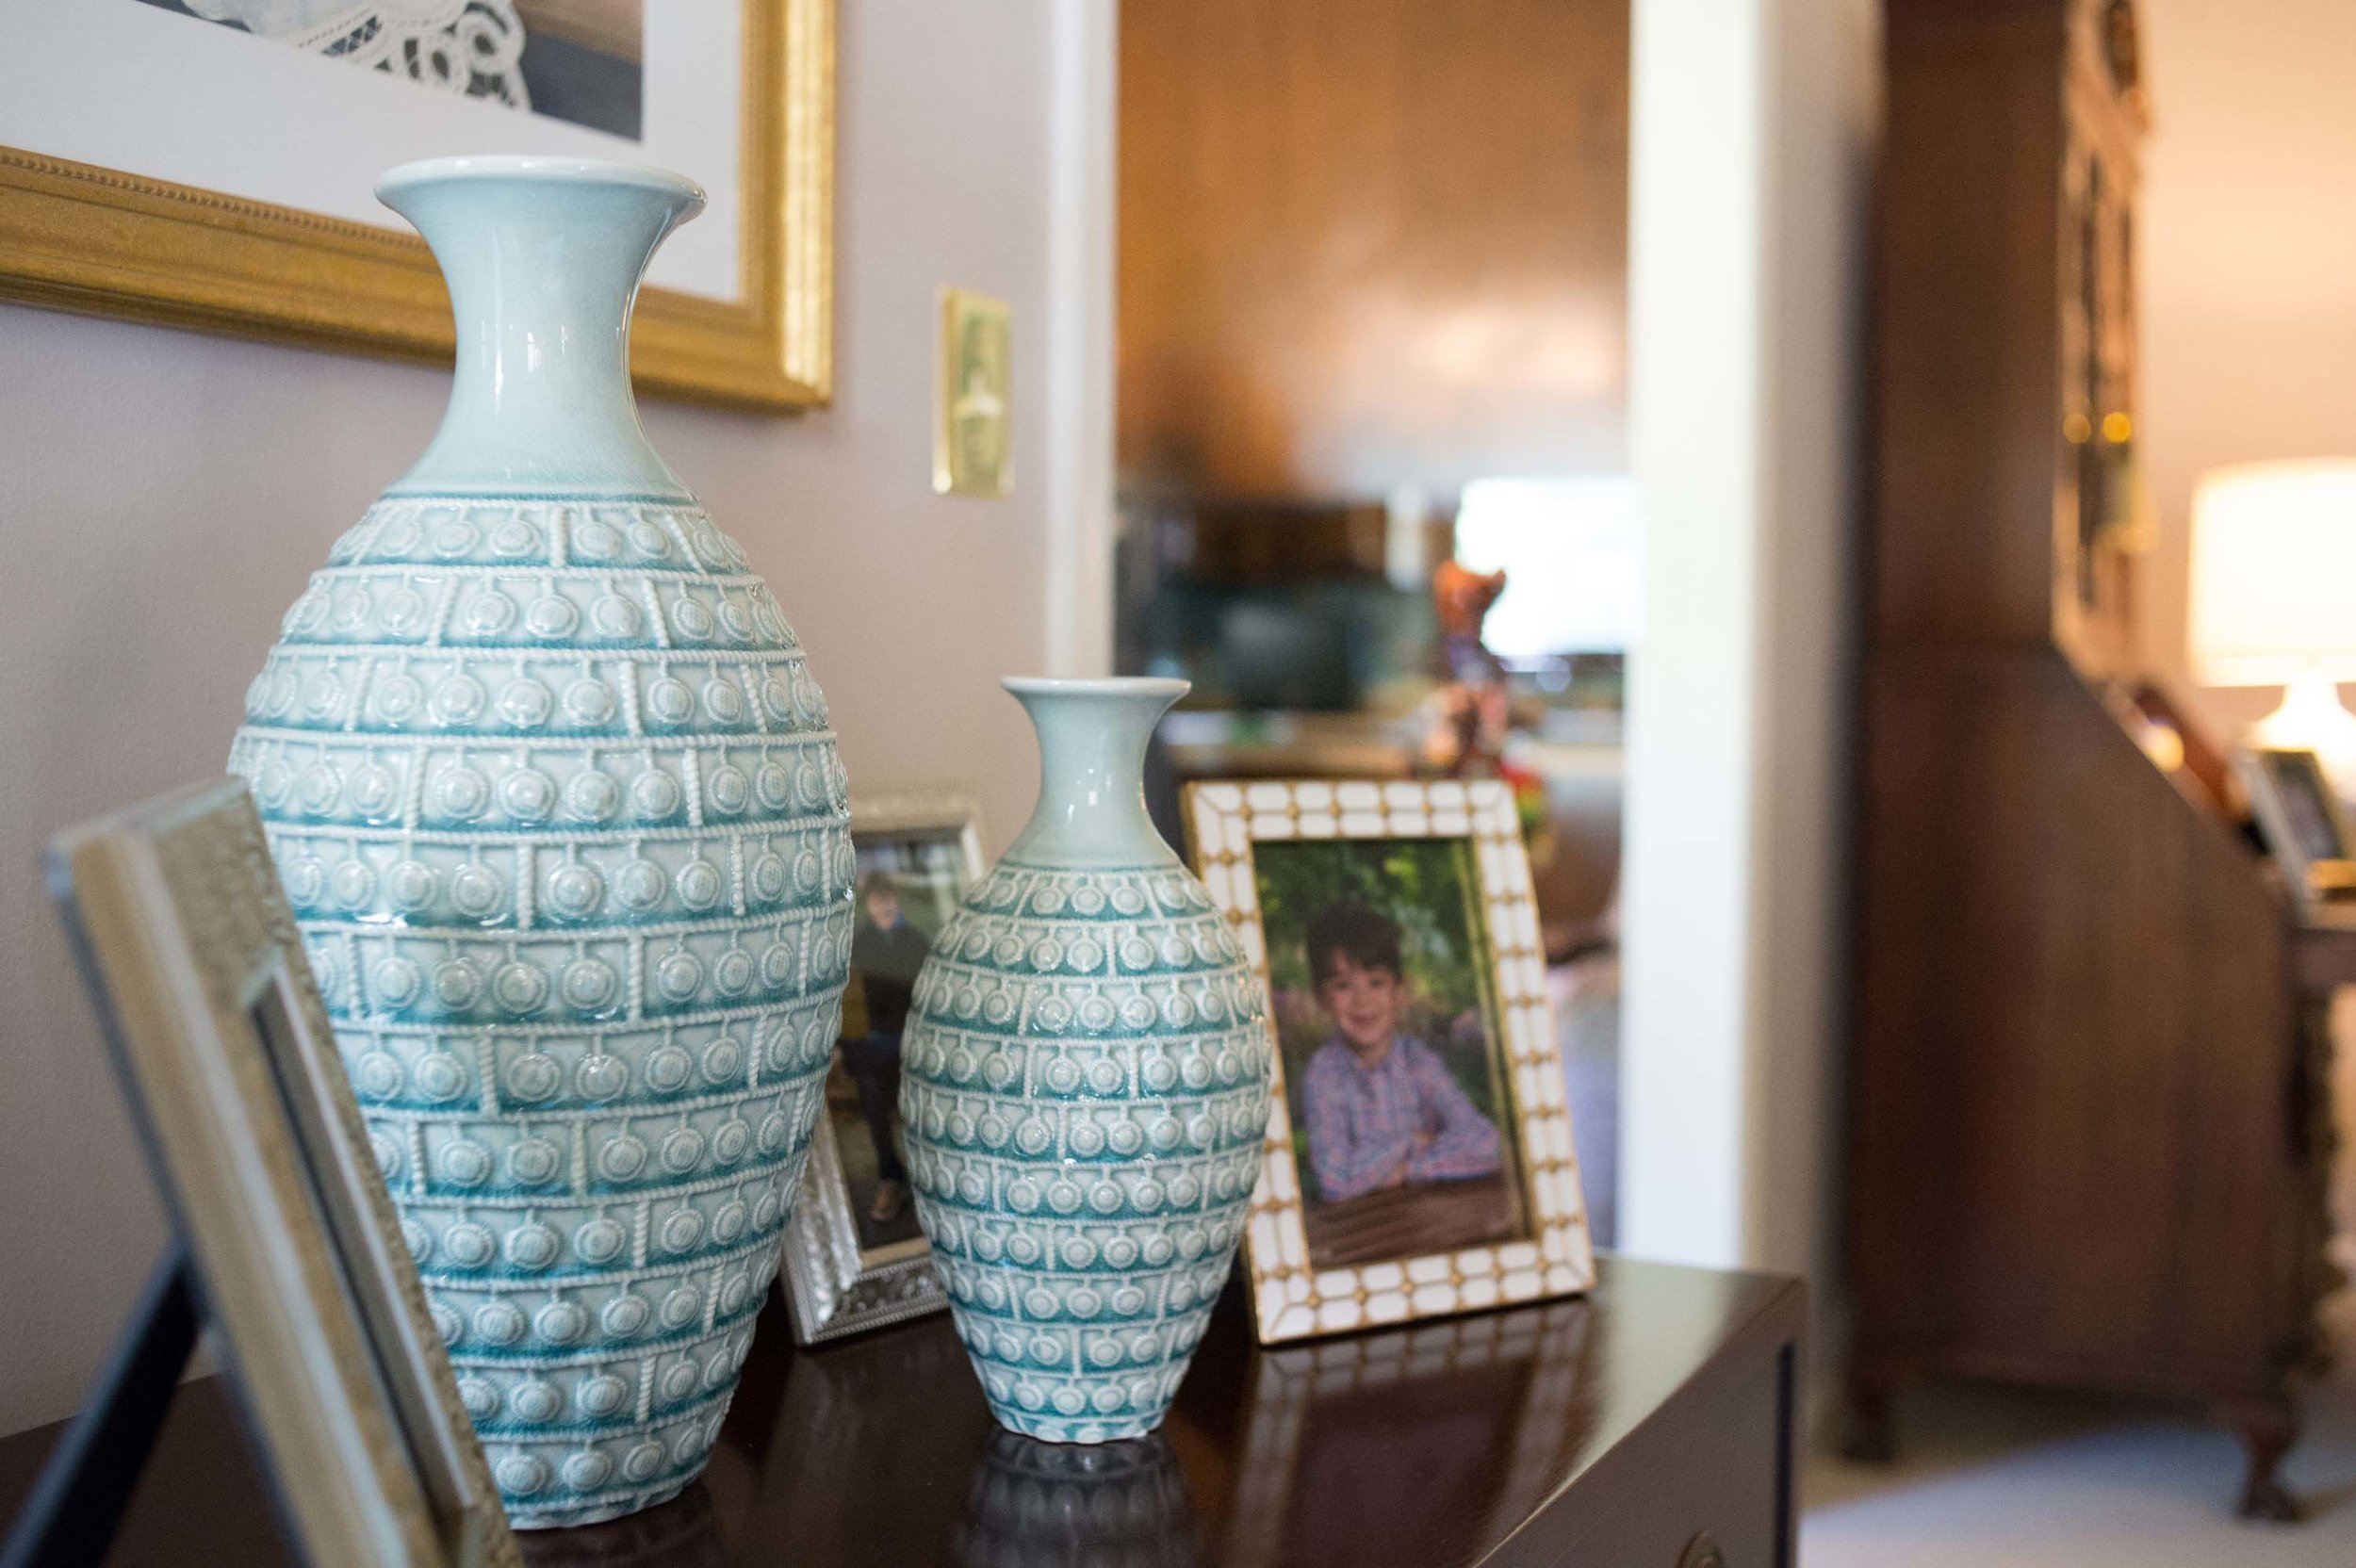 Light Blue Vases in Living Room with Picture Frames